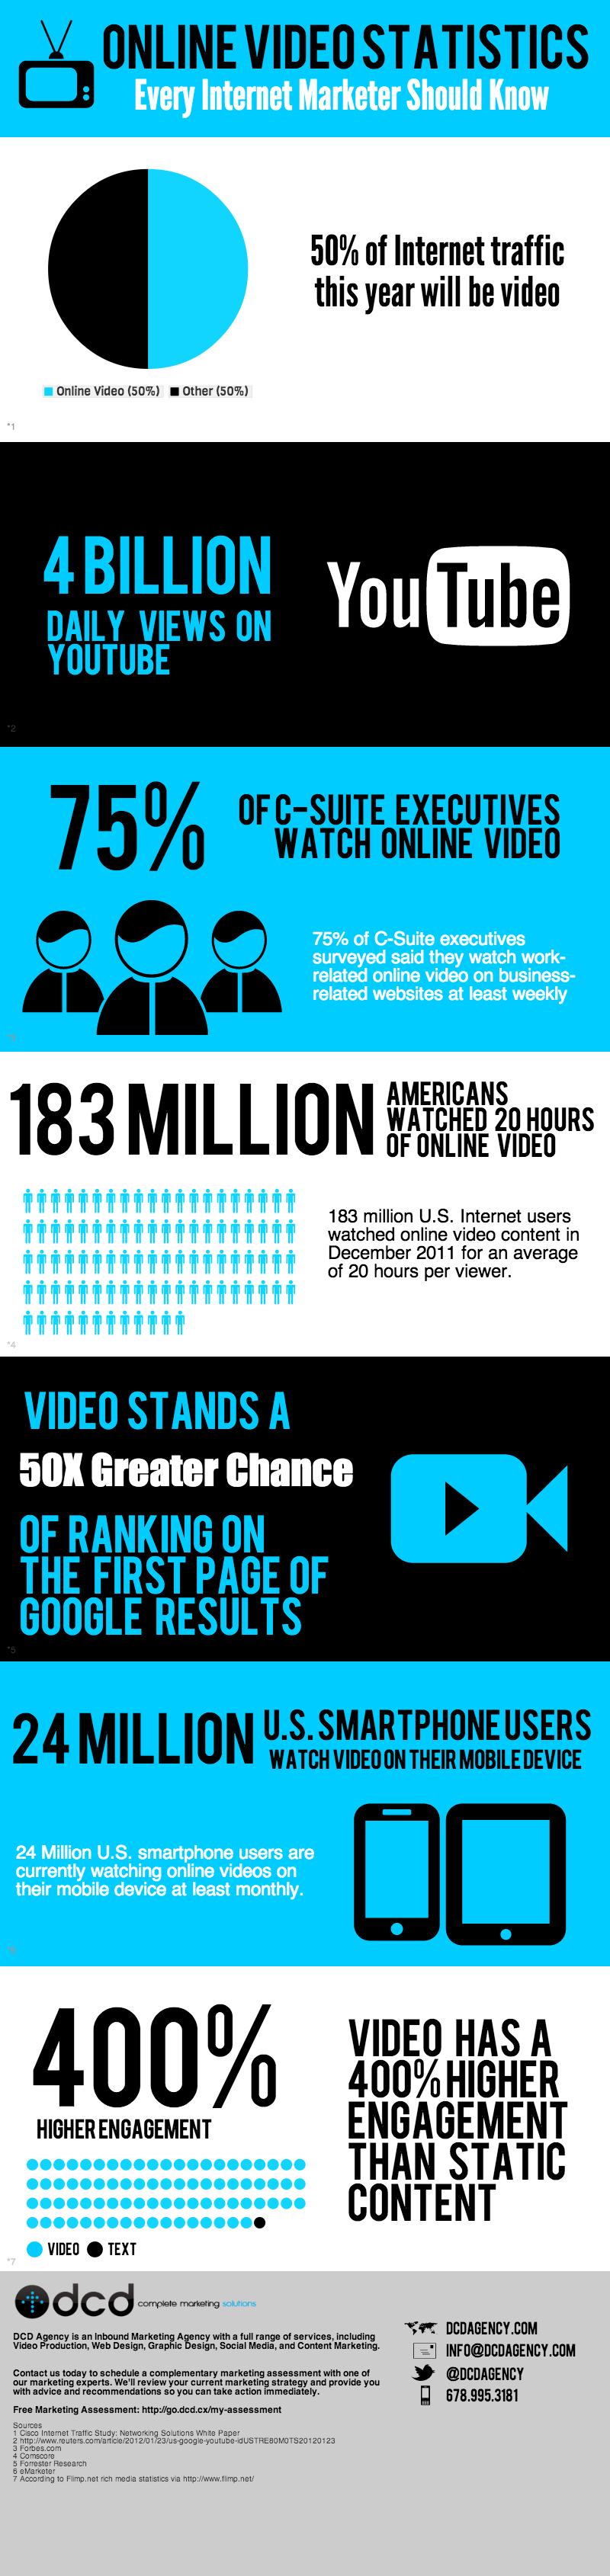 Online-Video-Statistics-Every-Marketer-Should-Know-V1-DCDAGENCY-1